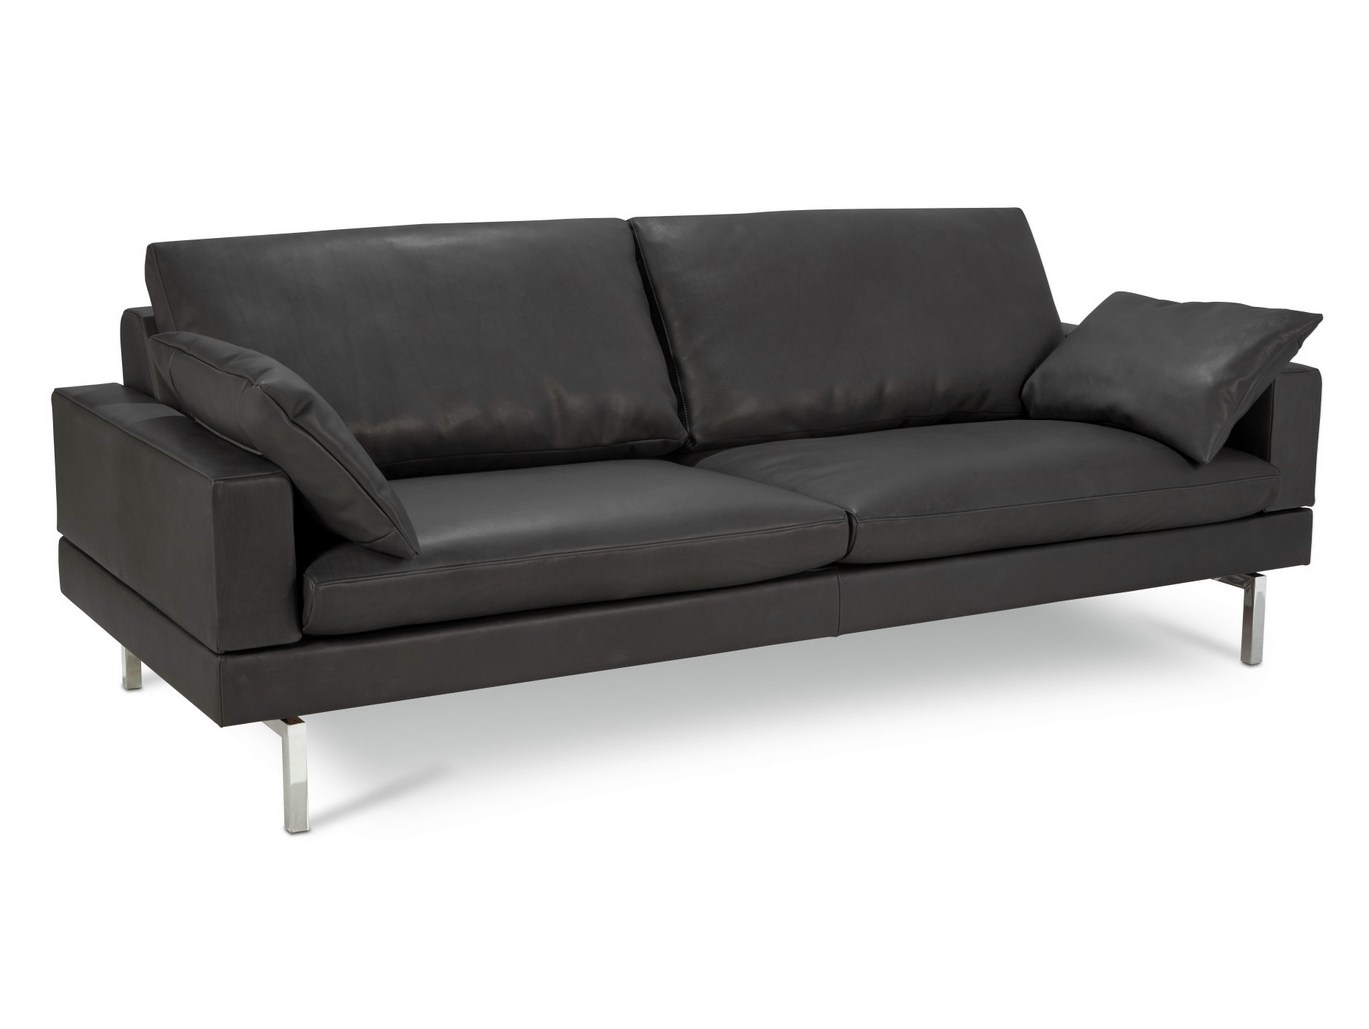 Tigra 3 Er Sofa By Jori Design Verhaert New Products Services